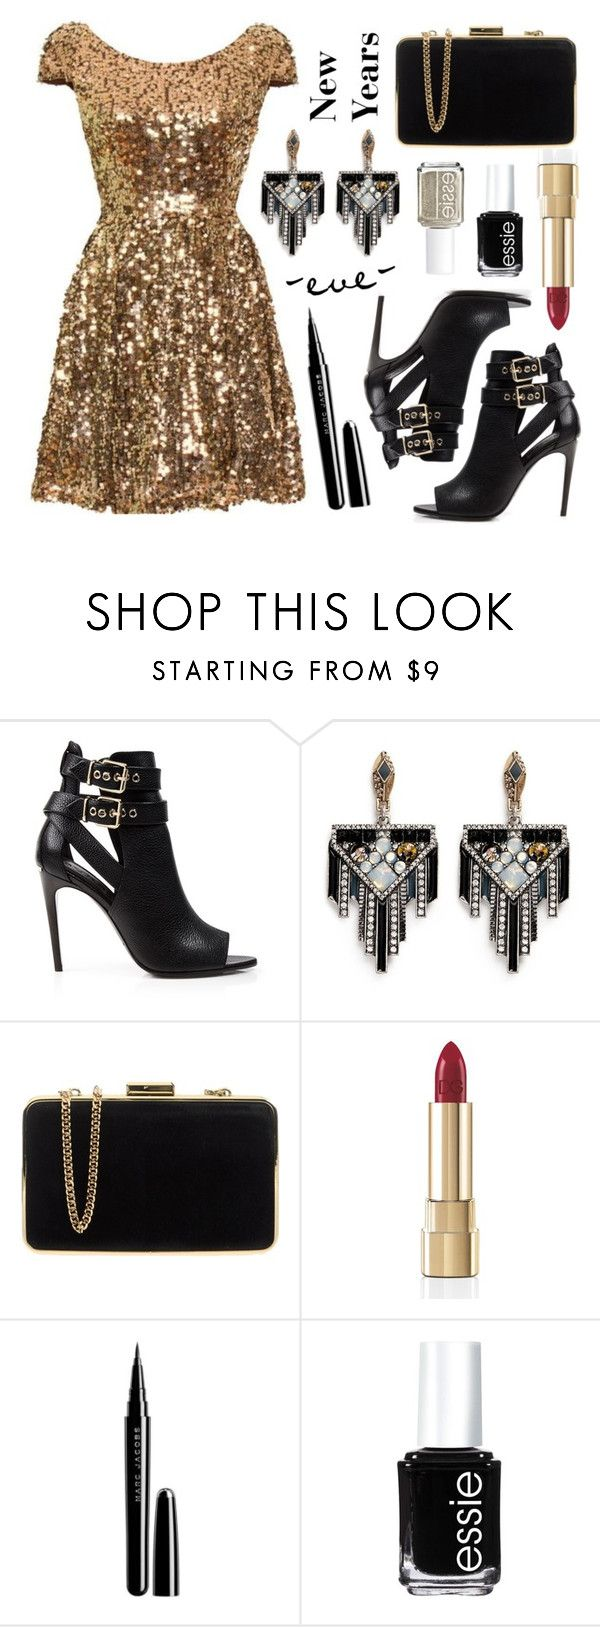 """NYE Party Contest Entry"" by hailstorm7516 ❤ liked on Polyvore featuring Burberry, Lulu Frost, MICHAEL Michael Kors, Dolce&Gabbana, Marc Jacobs, Essie, women's clothing, women's fashion, women and female"